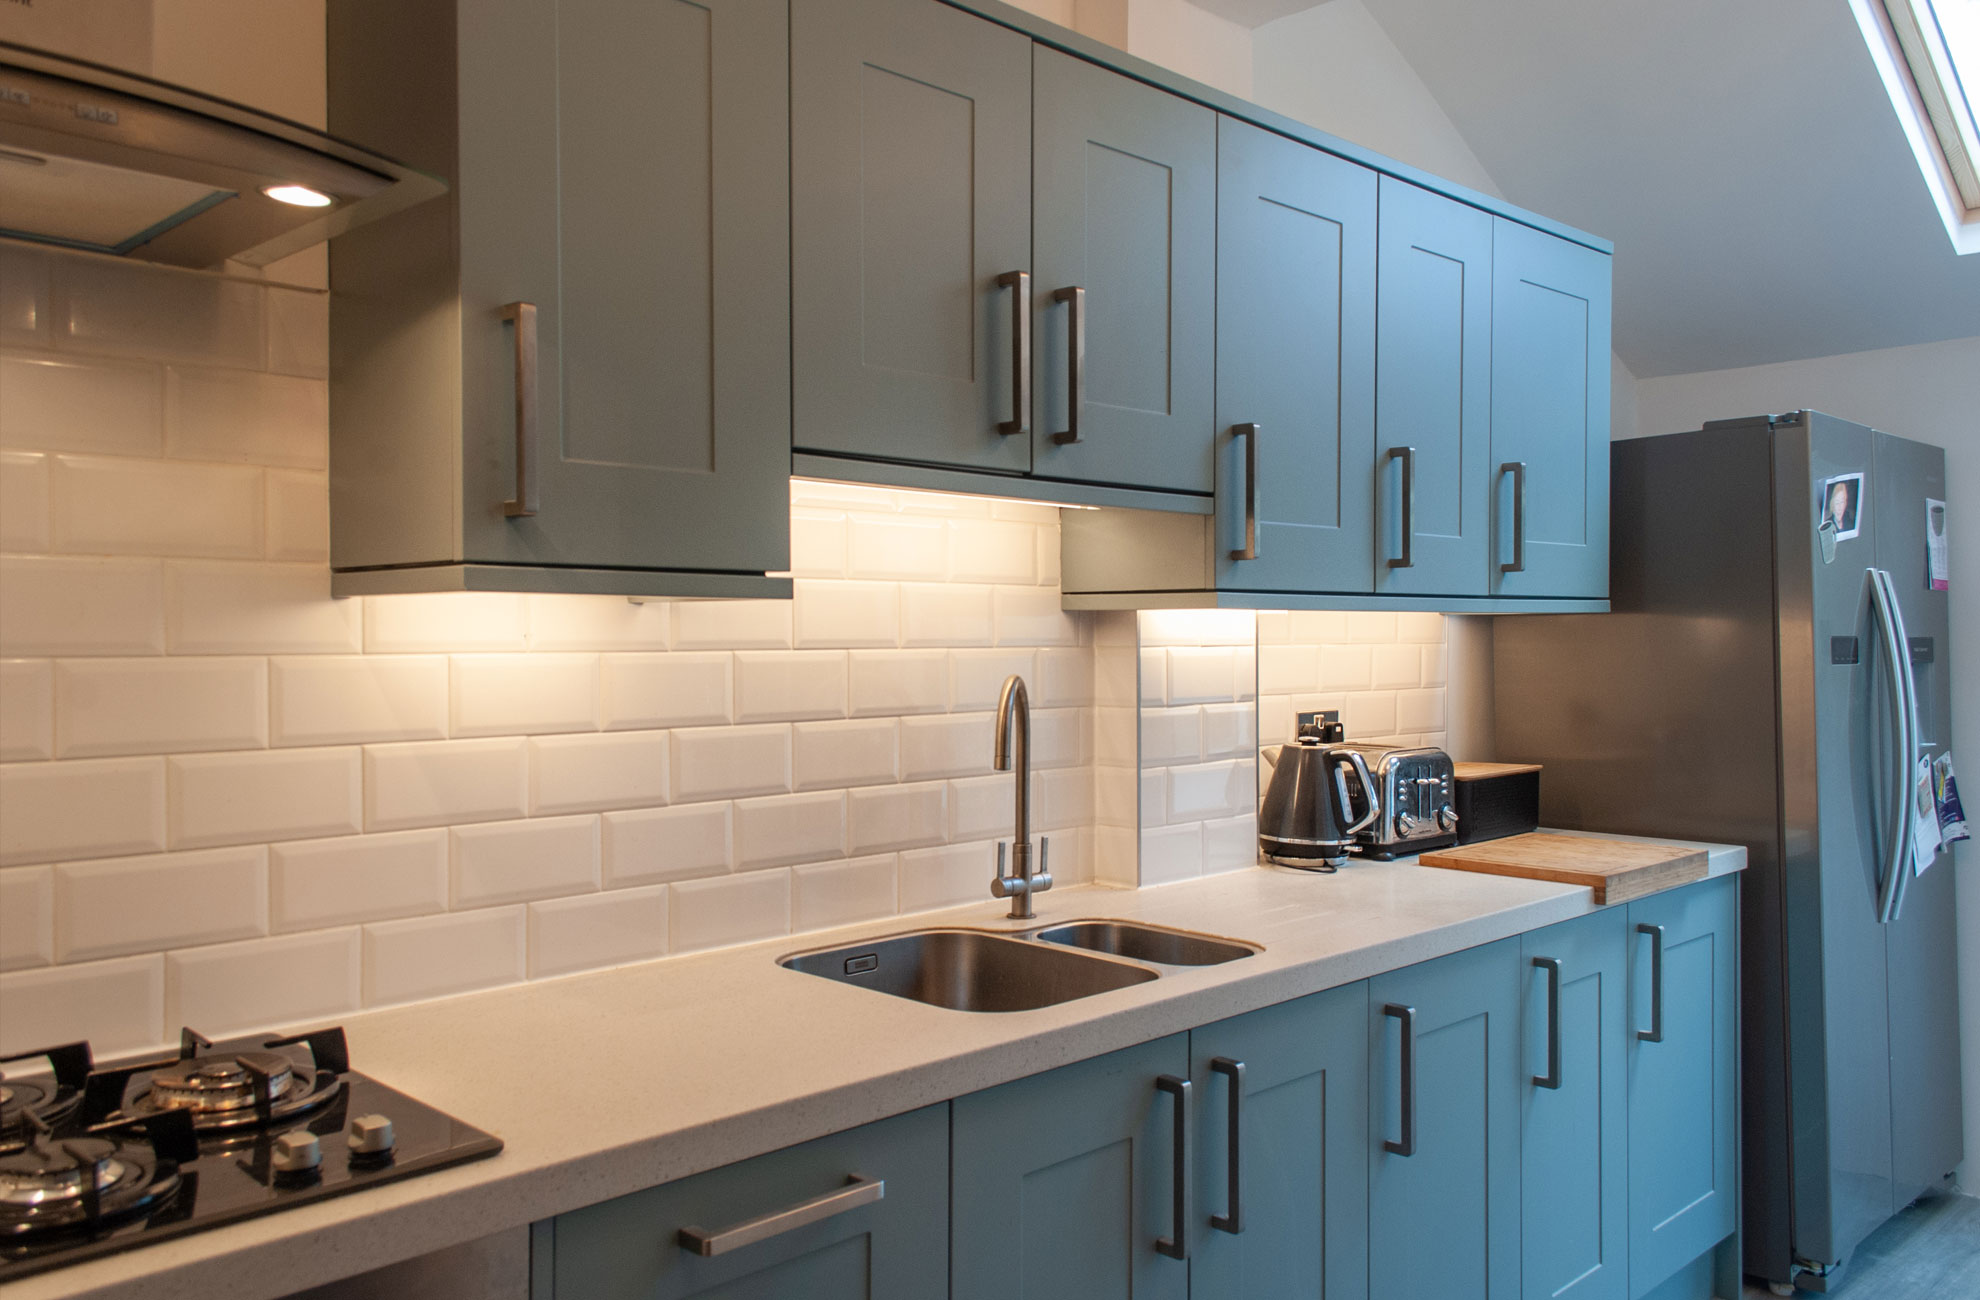 Mainly Kitchens - Bespoke Kitchen Bathroom and Carpentry installations Plymouth Devon